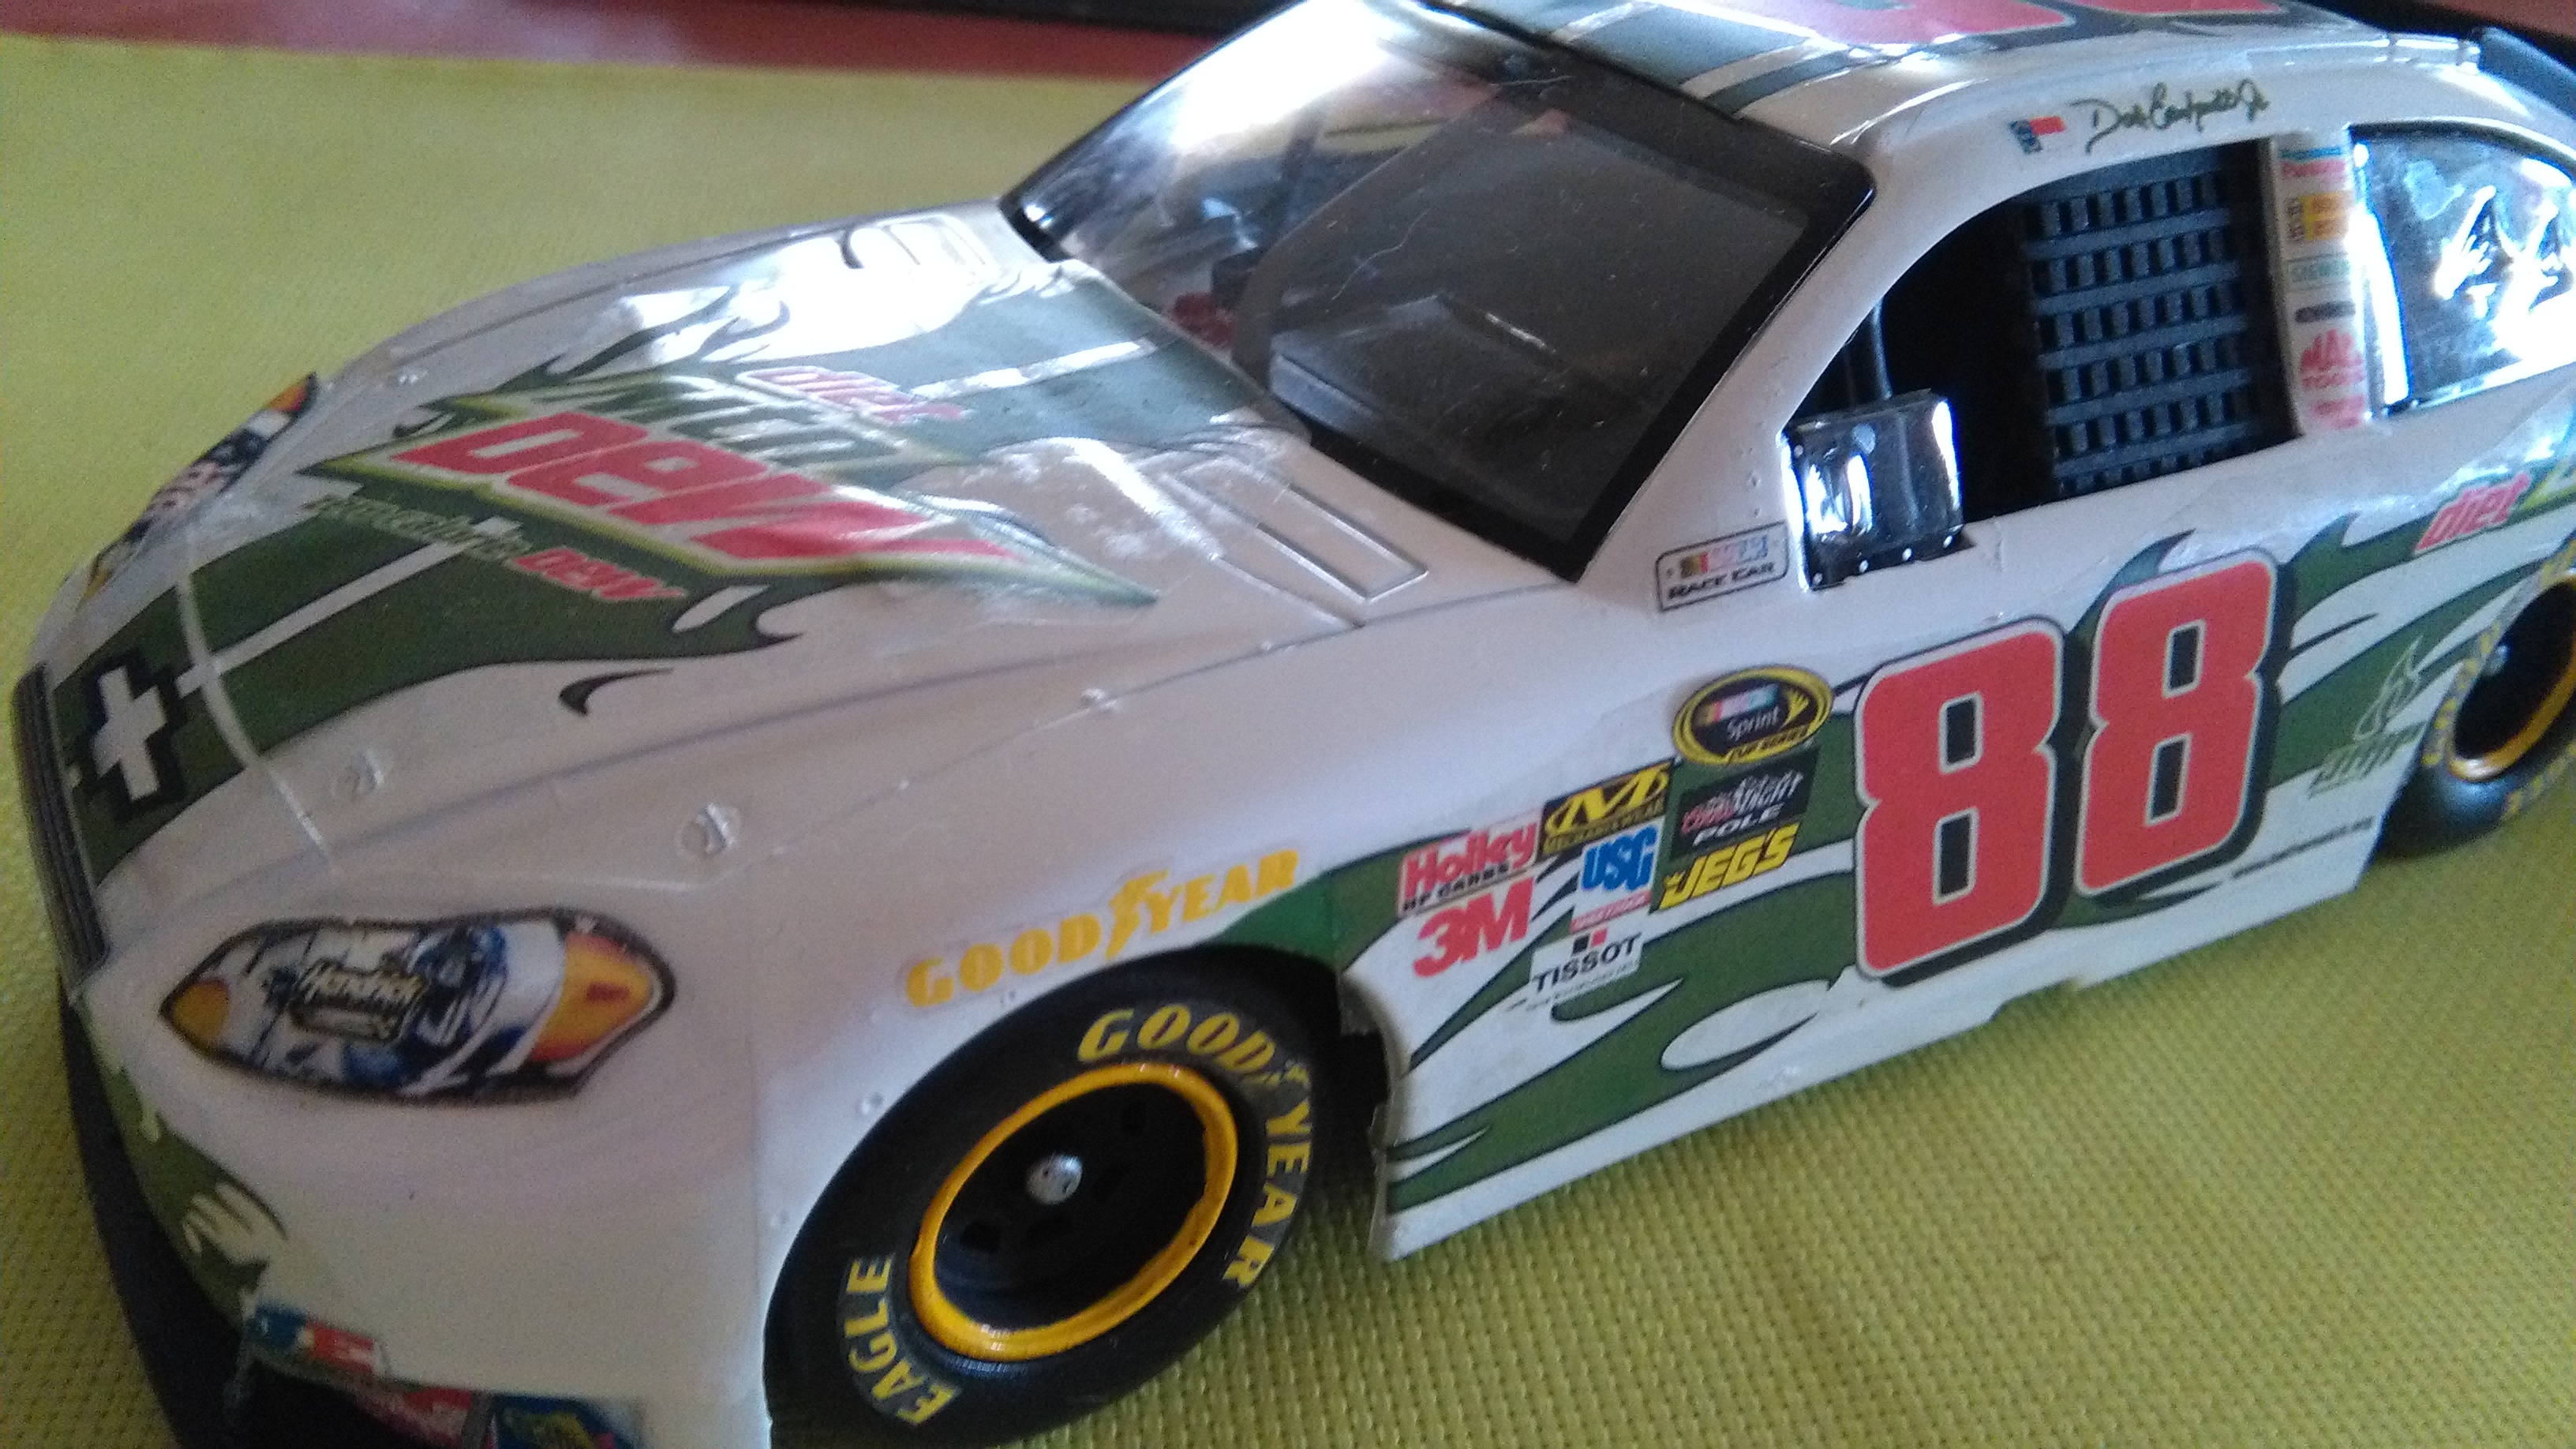 Chevy Impala 2010 #88 Earnhardt jr Mountain dew diet 260600IMG20160320150446